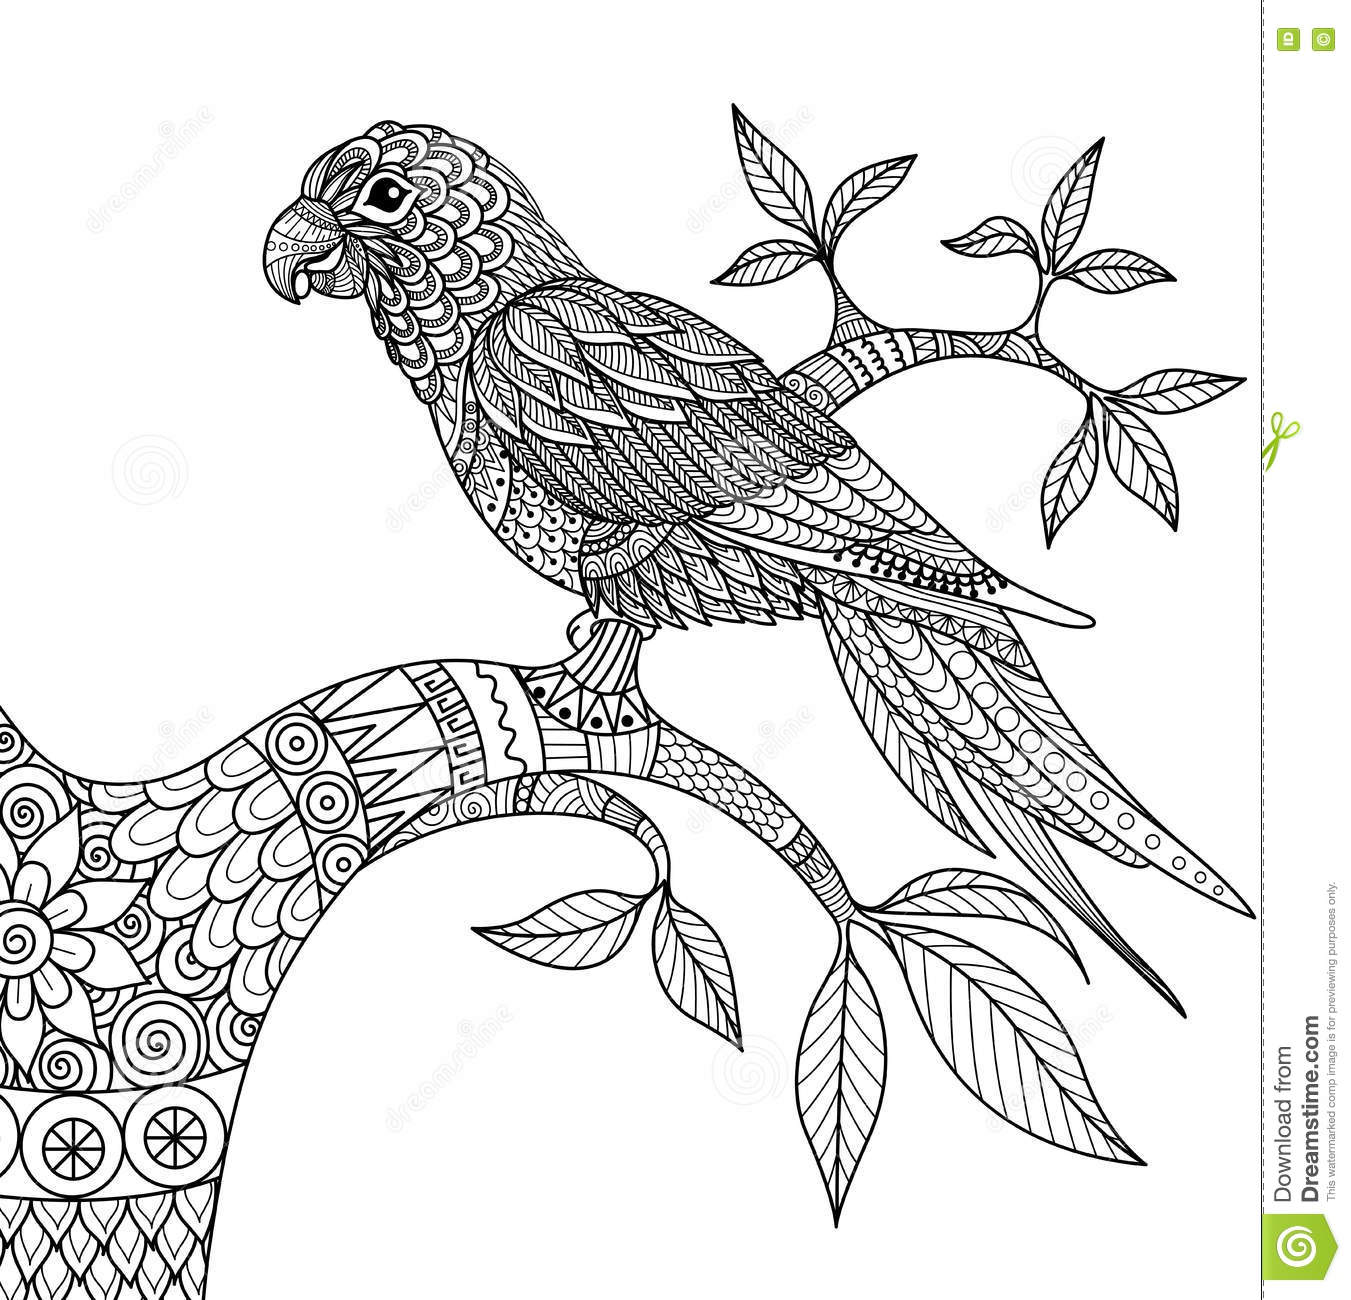 Doodle Design Of Parrot On Branch For Adult Coloring Book Stock Vector